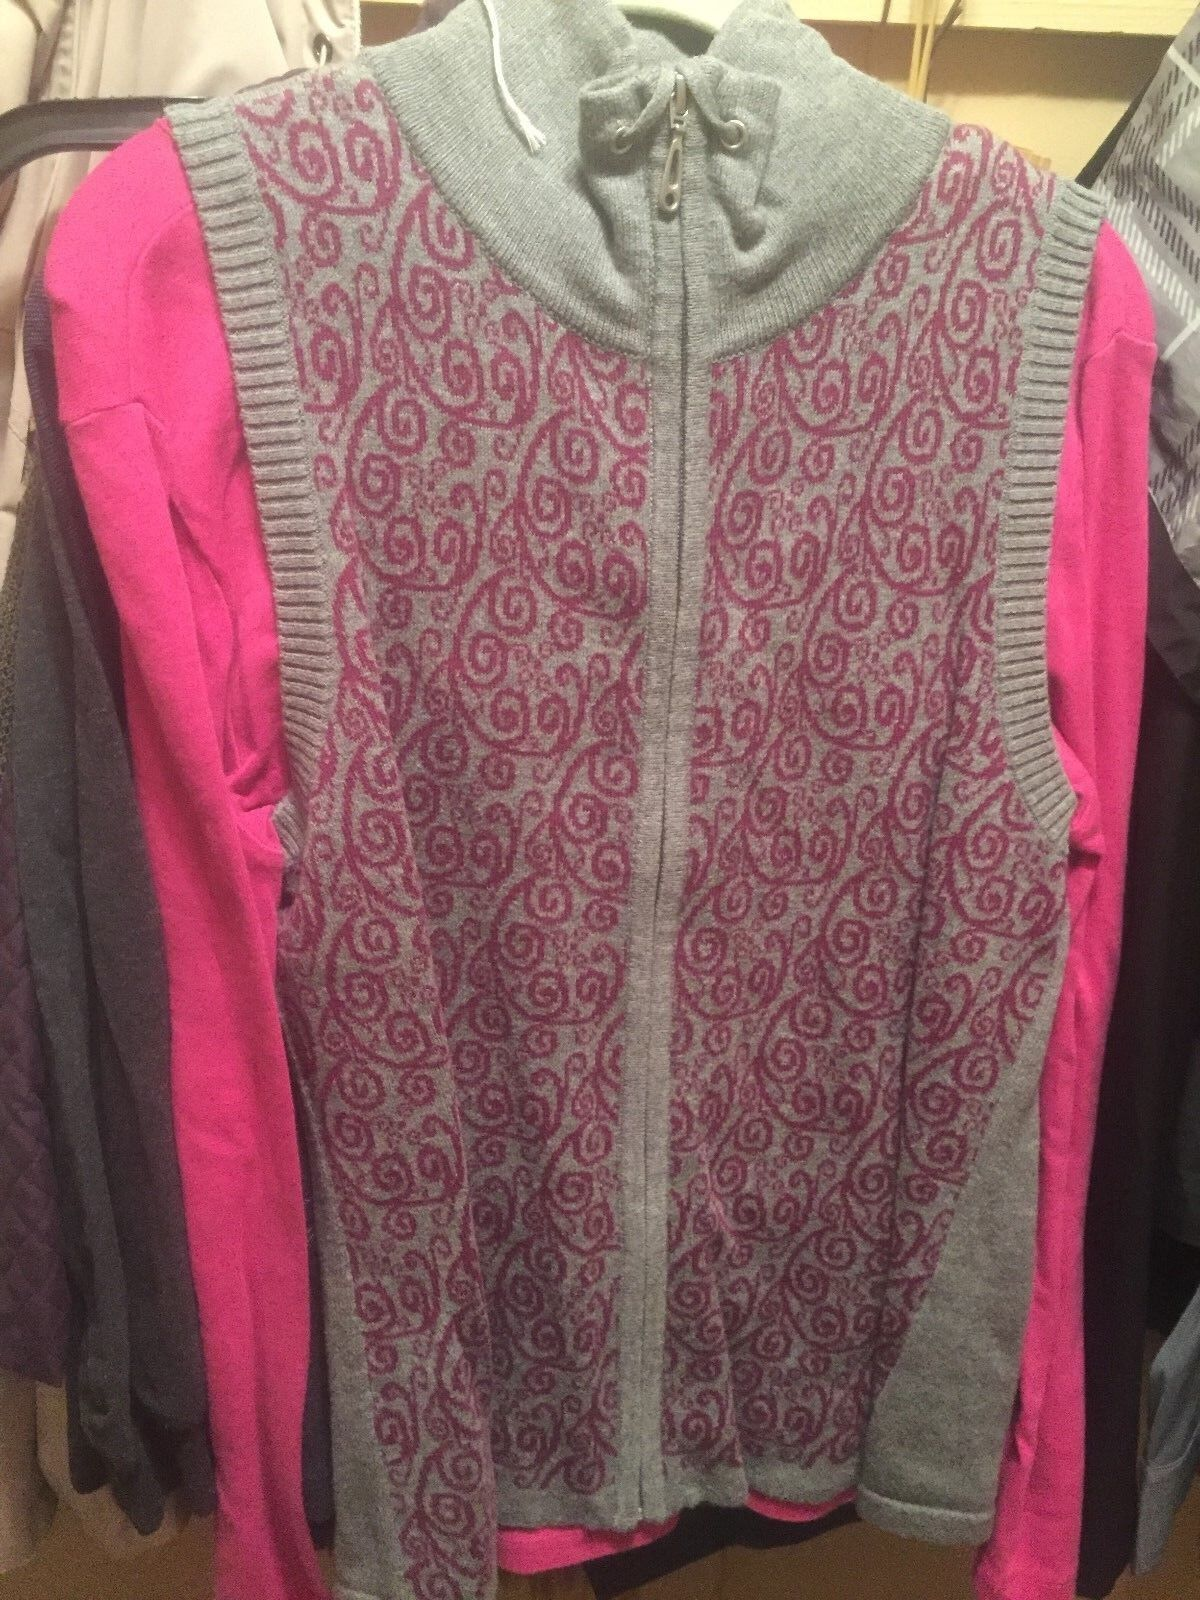 Christopher & Banks vest m and st johns top large… - image 1